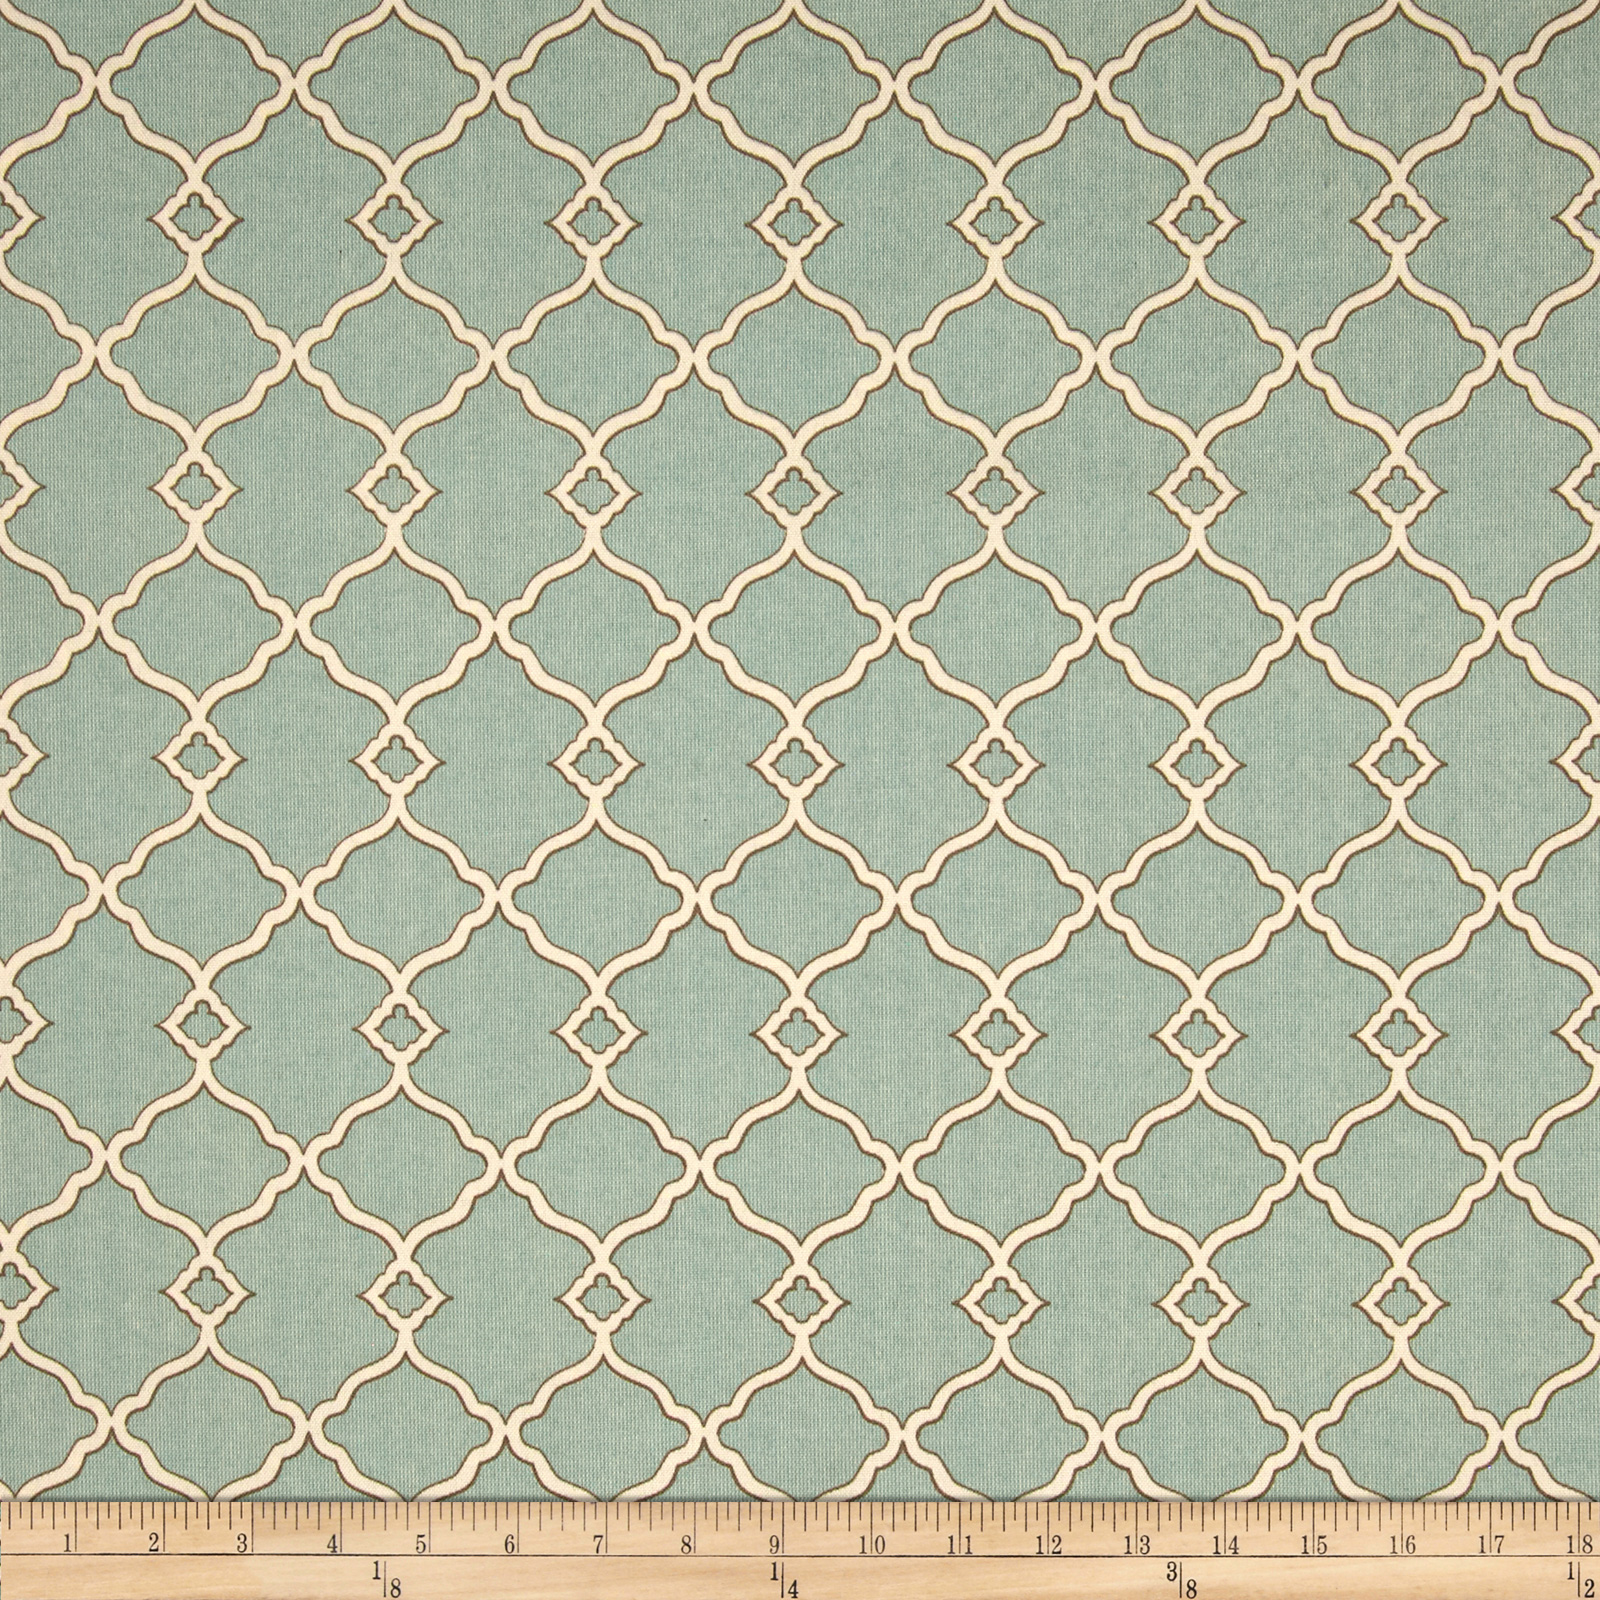 Waverly Sun N Shade Chippendale Fretwork Mineral Fabric